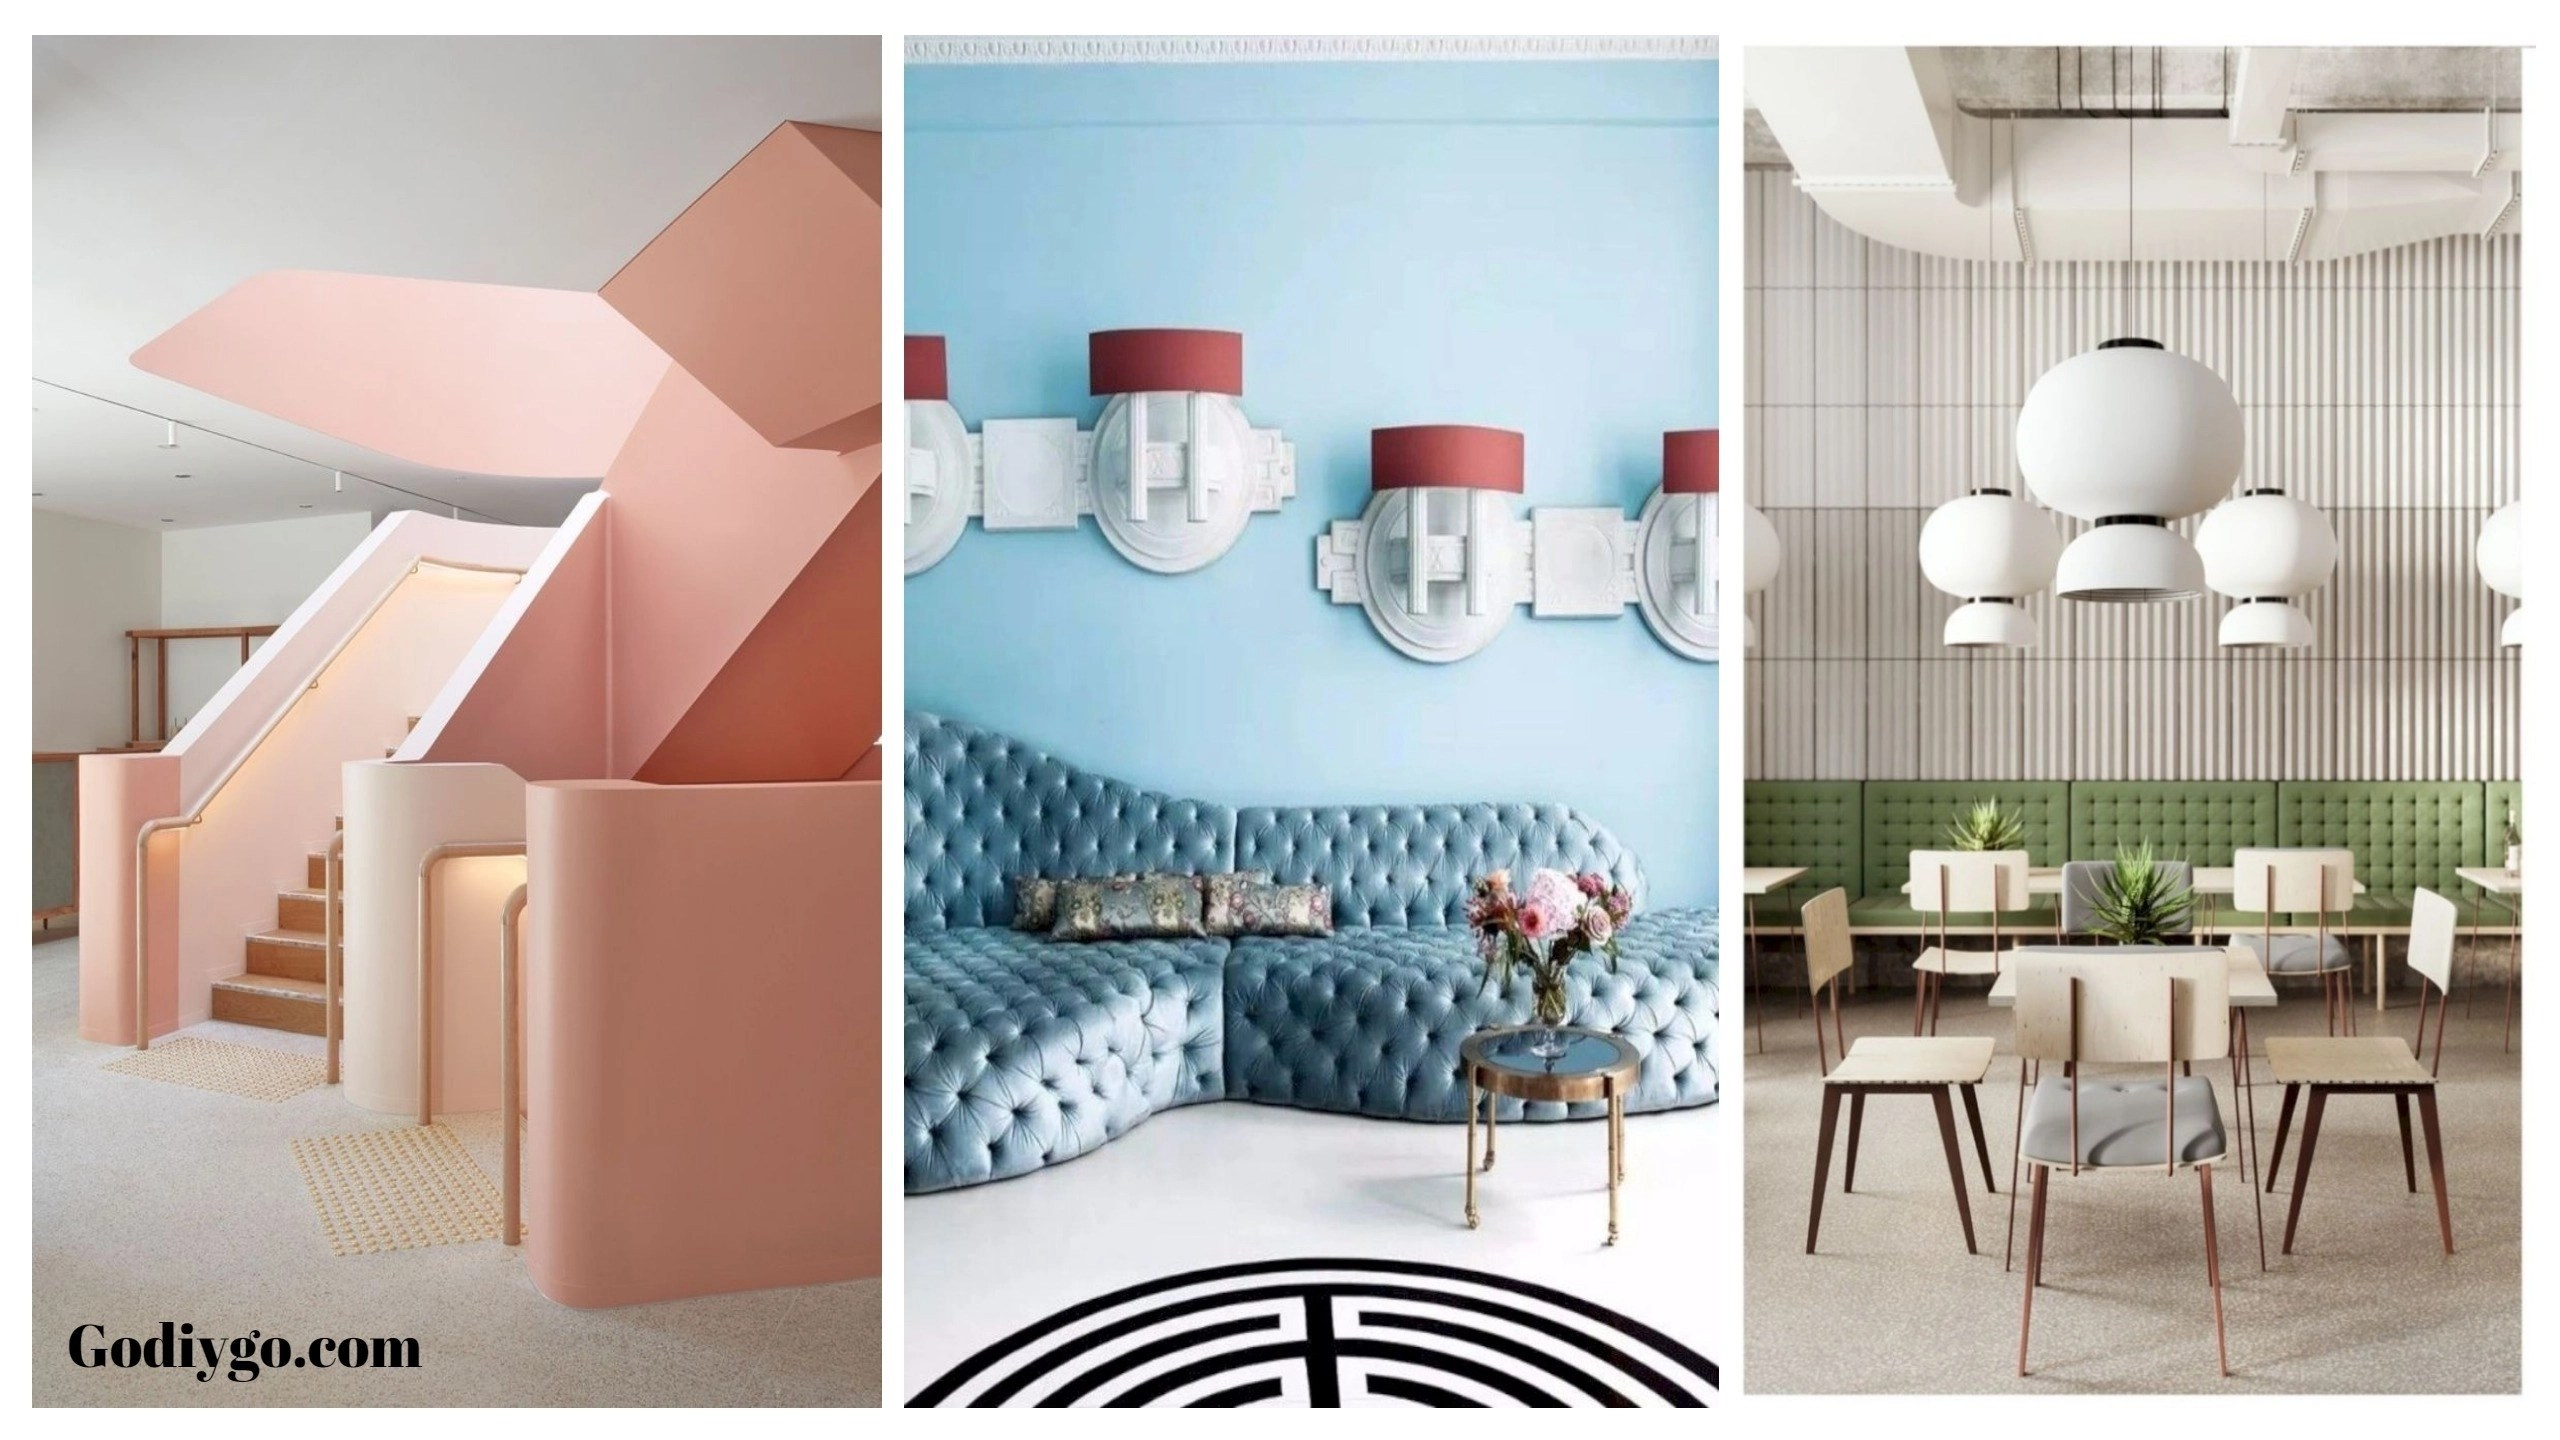 36 interior design trends we will be loving in 2018 - Interior design trends 2018 ...